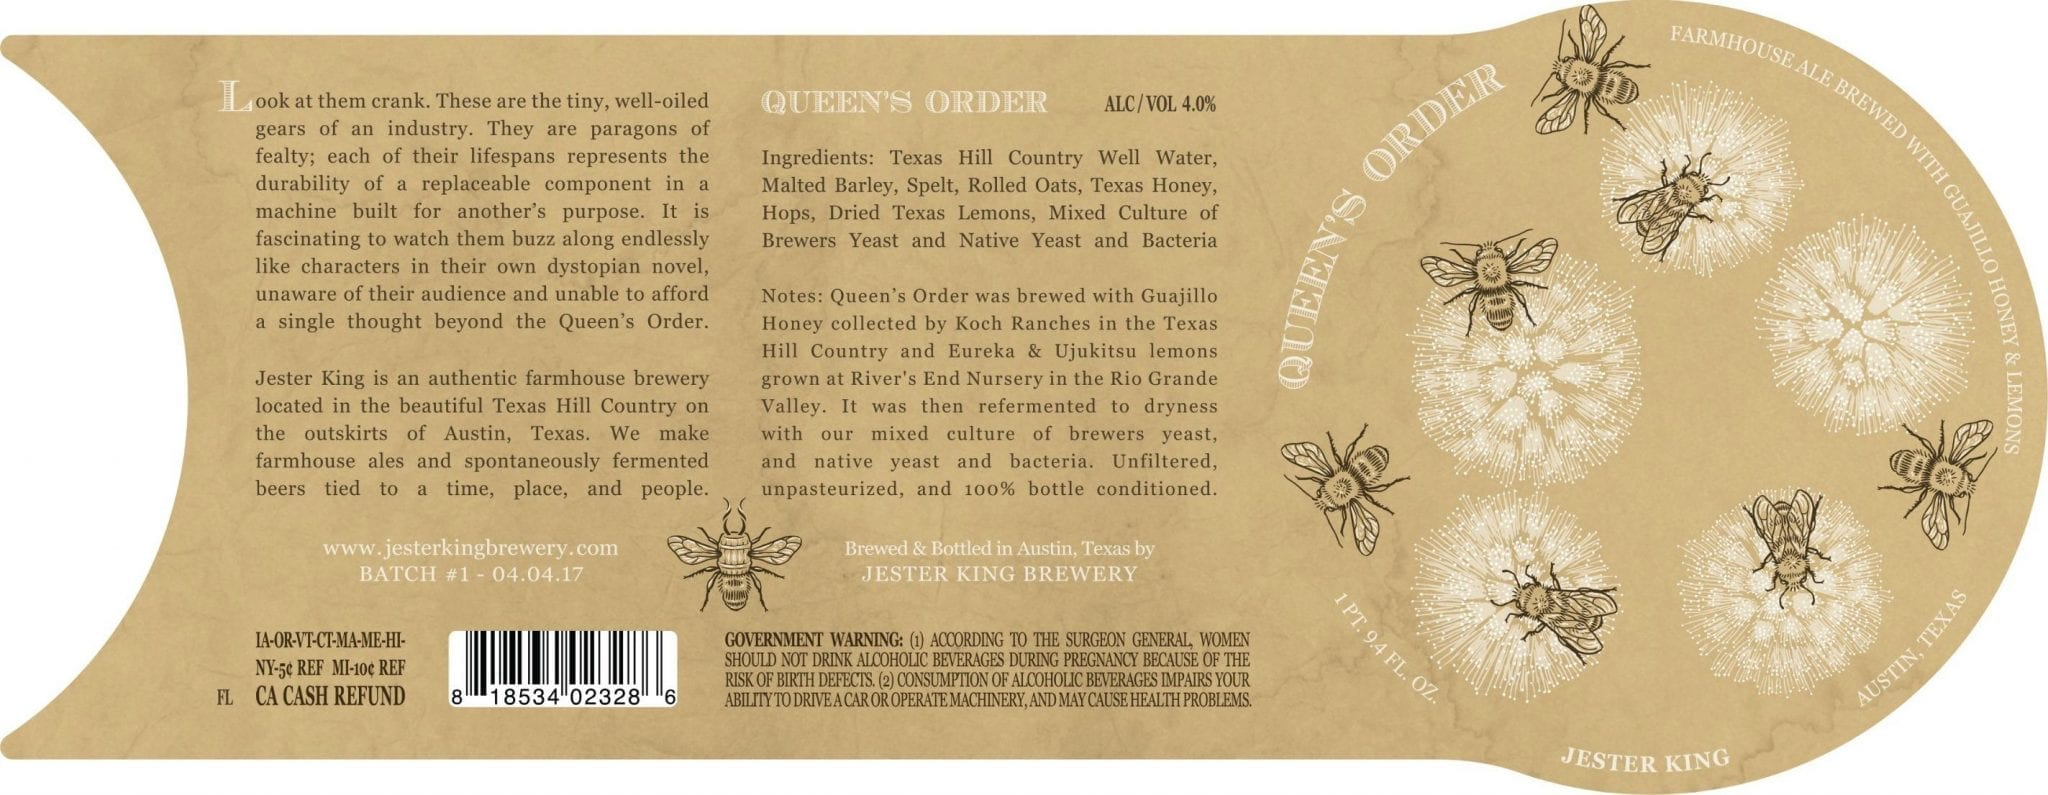 Josh Cockrell and the Beer Labels of Jester King   Thirsty Bastards